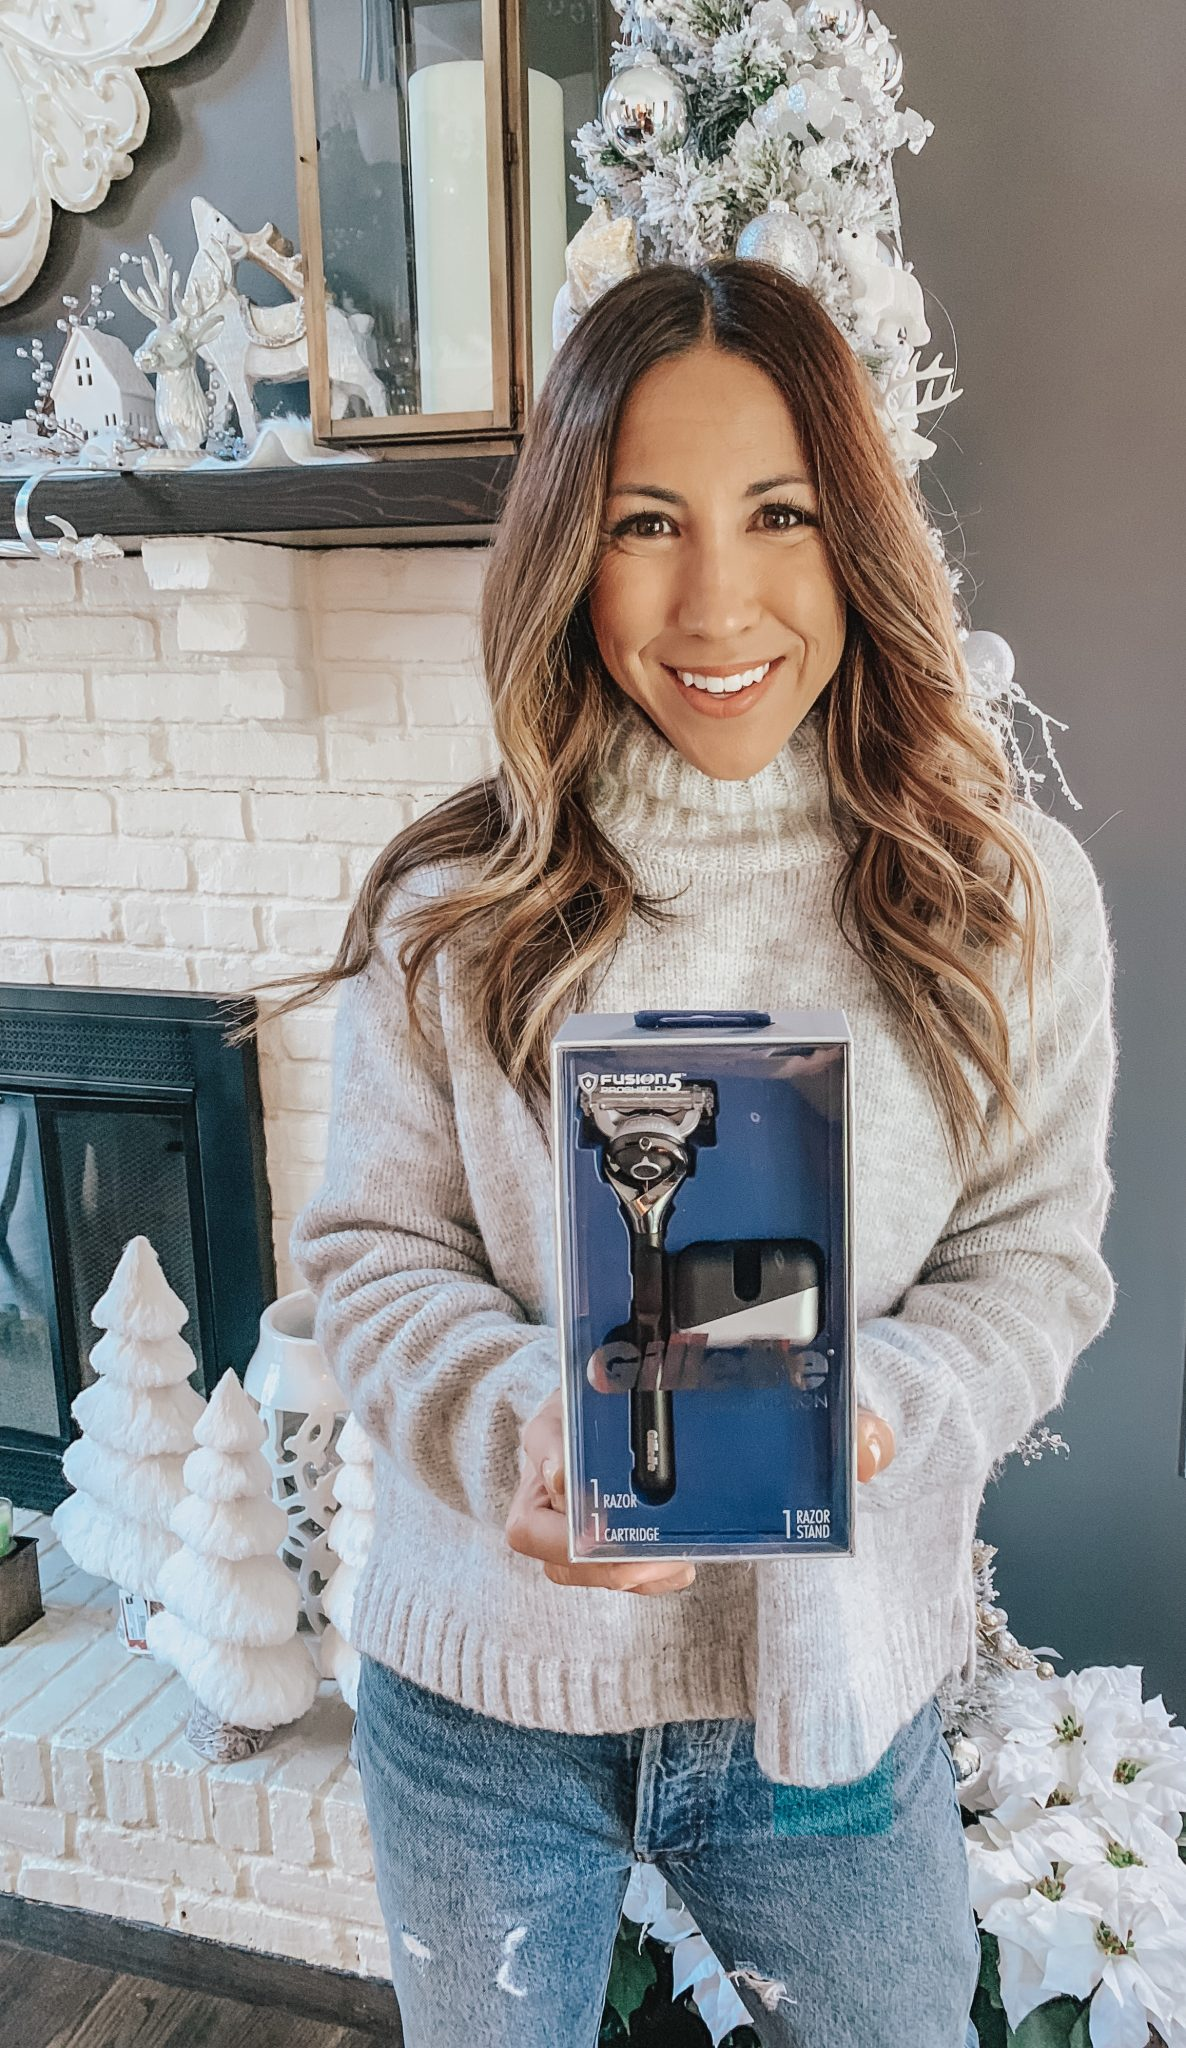 the perfect gift for him with Gillette